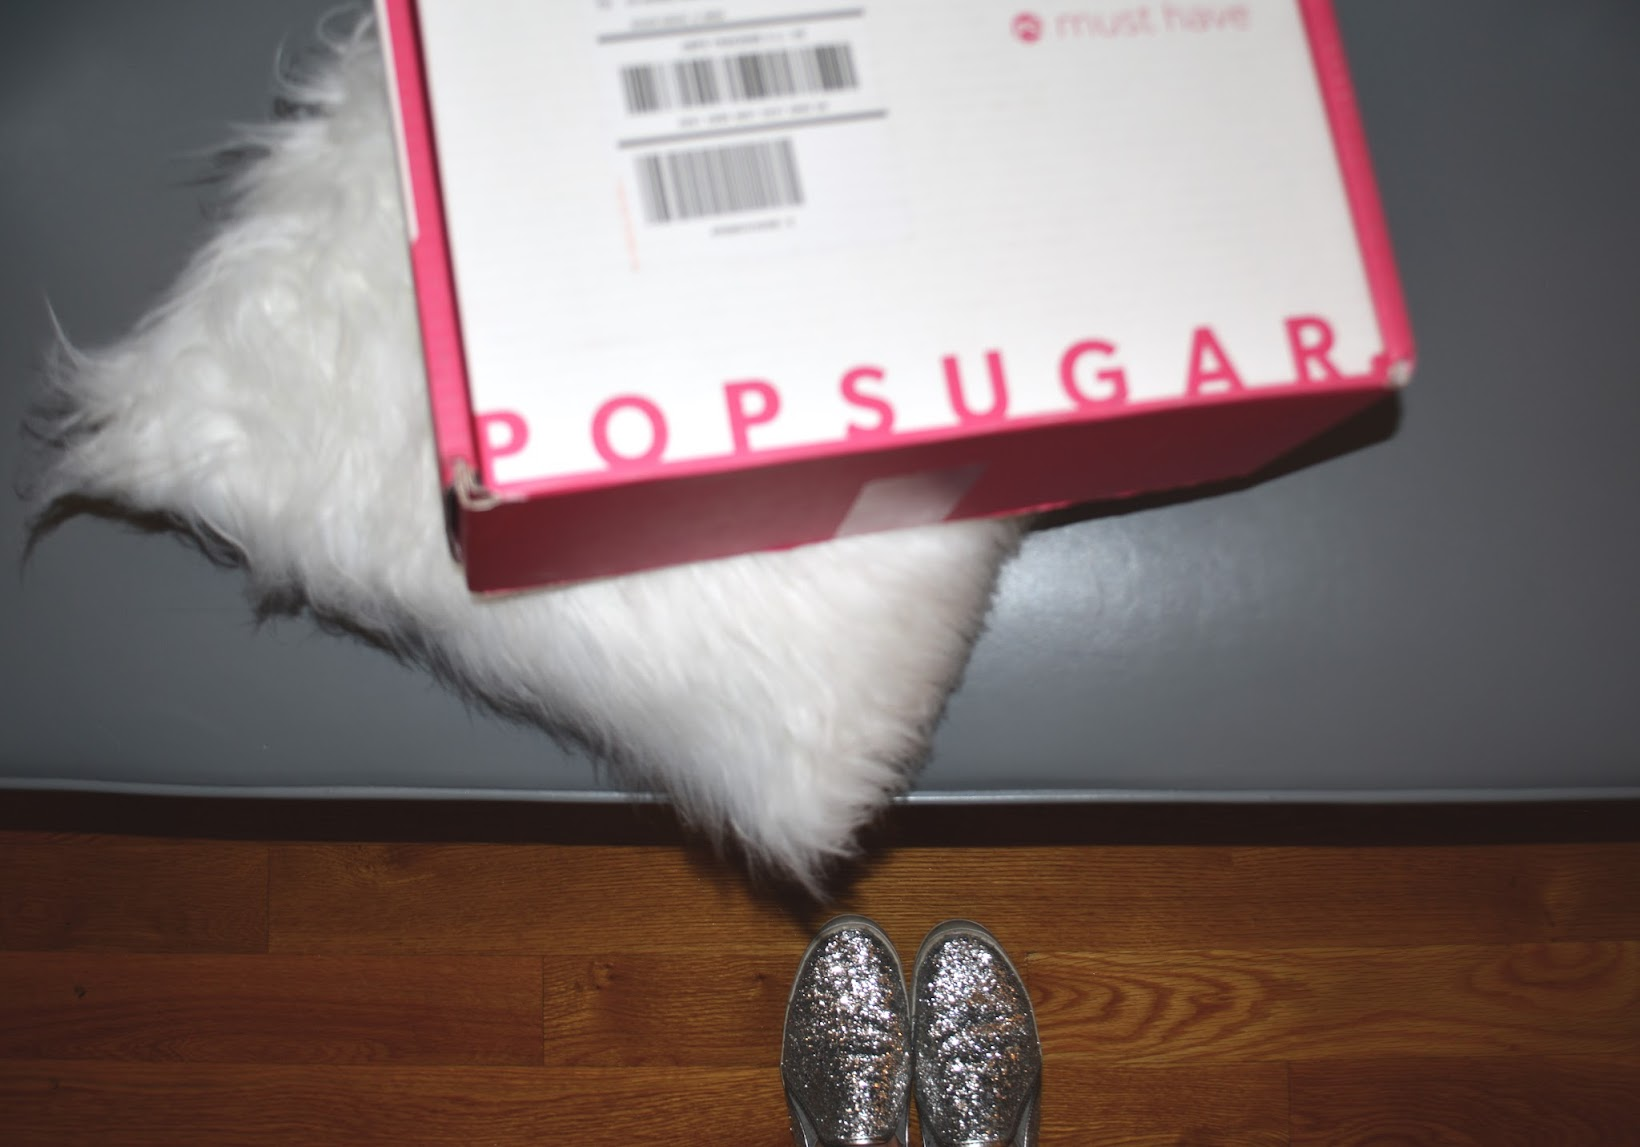 Popsugar Must Have Subscription, Popsugar, Popsugar Box, Popsugar monthly subscription, Chicago blogger, Must Have review, Smith & Cult lipgloss, Smith & Cult lip lacquer, Smith & Cult lip lacquer in The Wanted, Jack + Lucy Bicoastal Wide Brim hat, sombrero de lana, wool hat, September Must Have Box, Briogeo hair mask, The Gluten Free Bites, NCLA Mani ER, Flint lint roller, retractable lint roller, Latina blogger